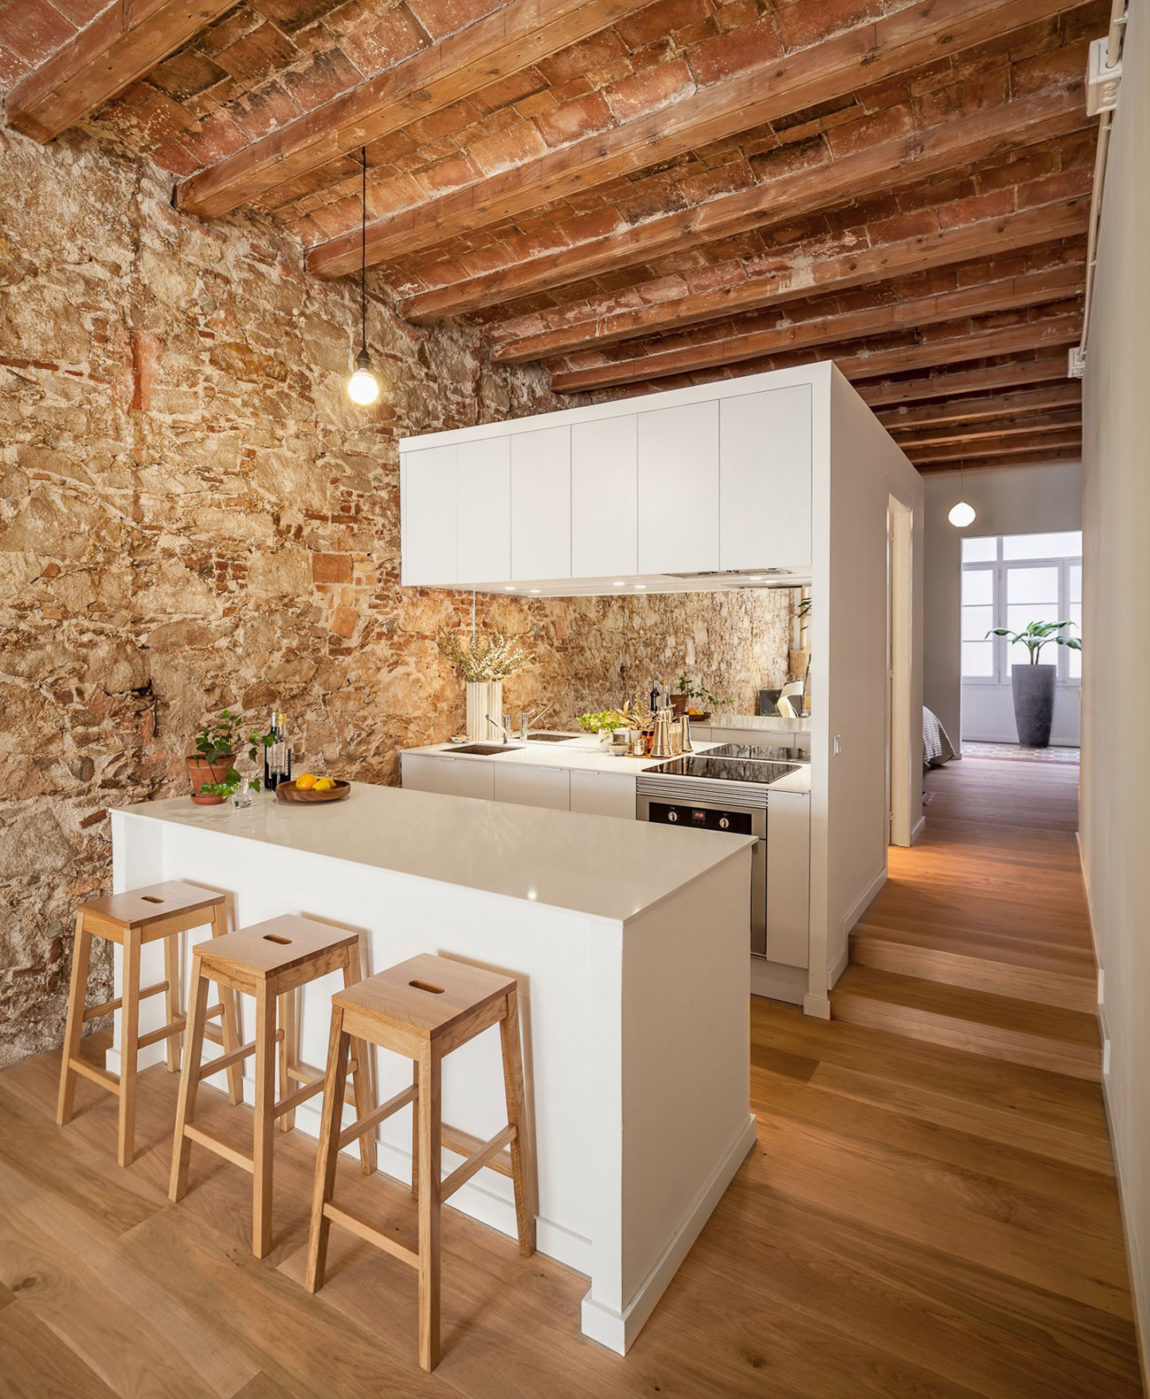 Renovation Apartment in Les Corts by Sergi Pons (3)